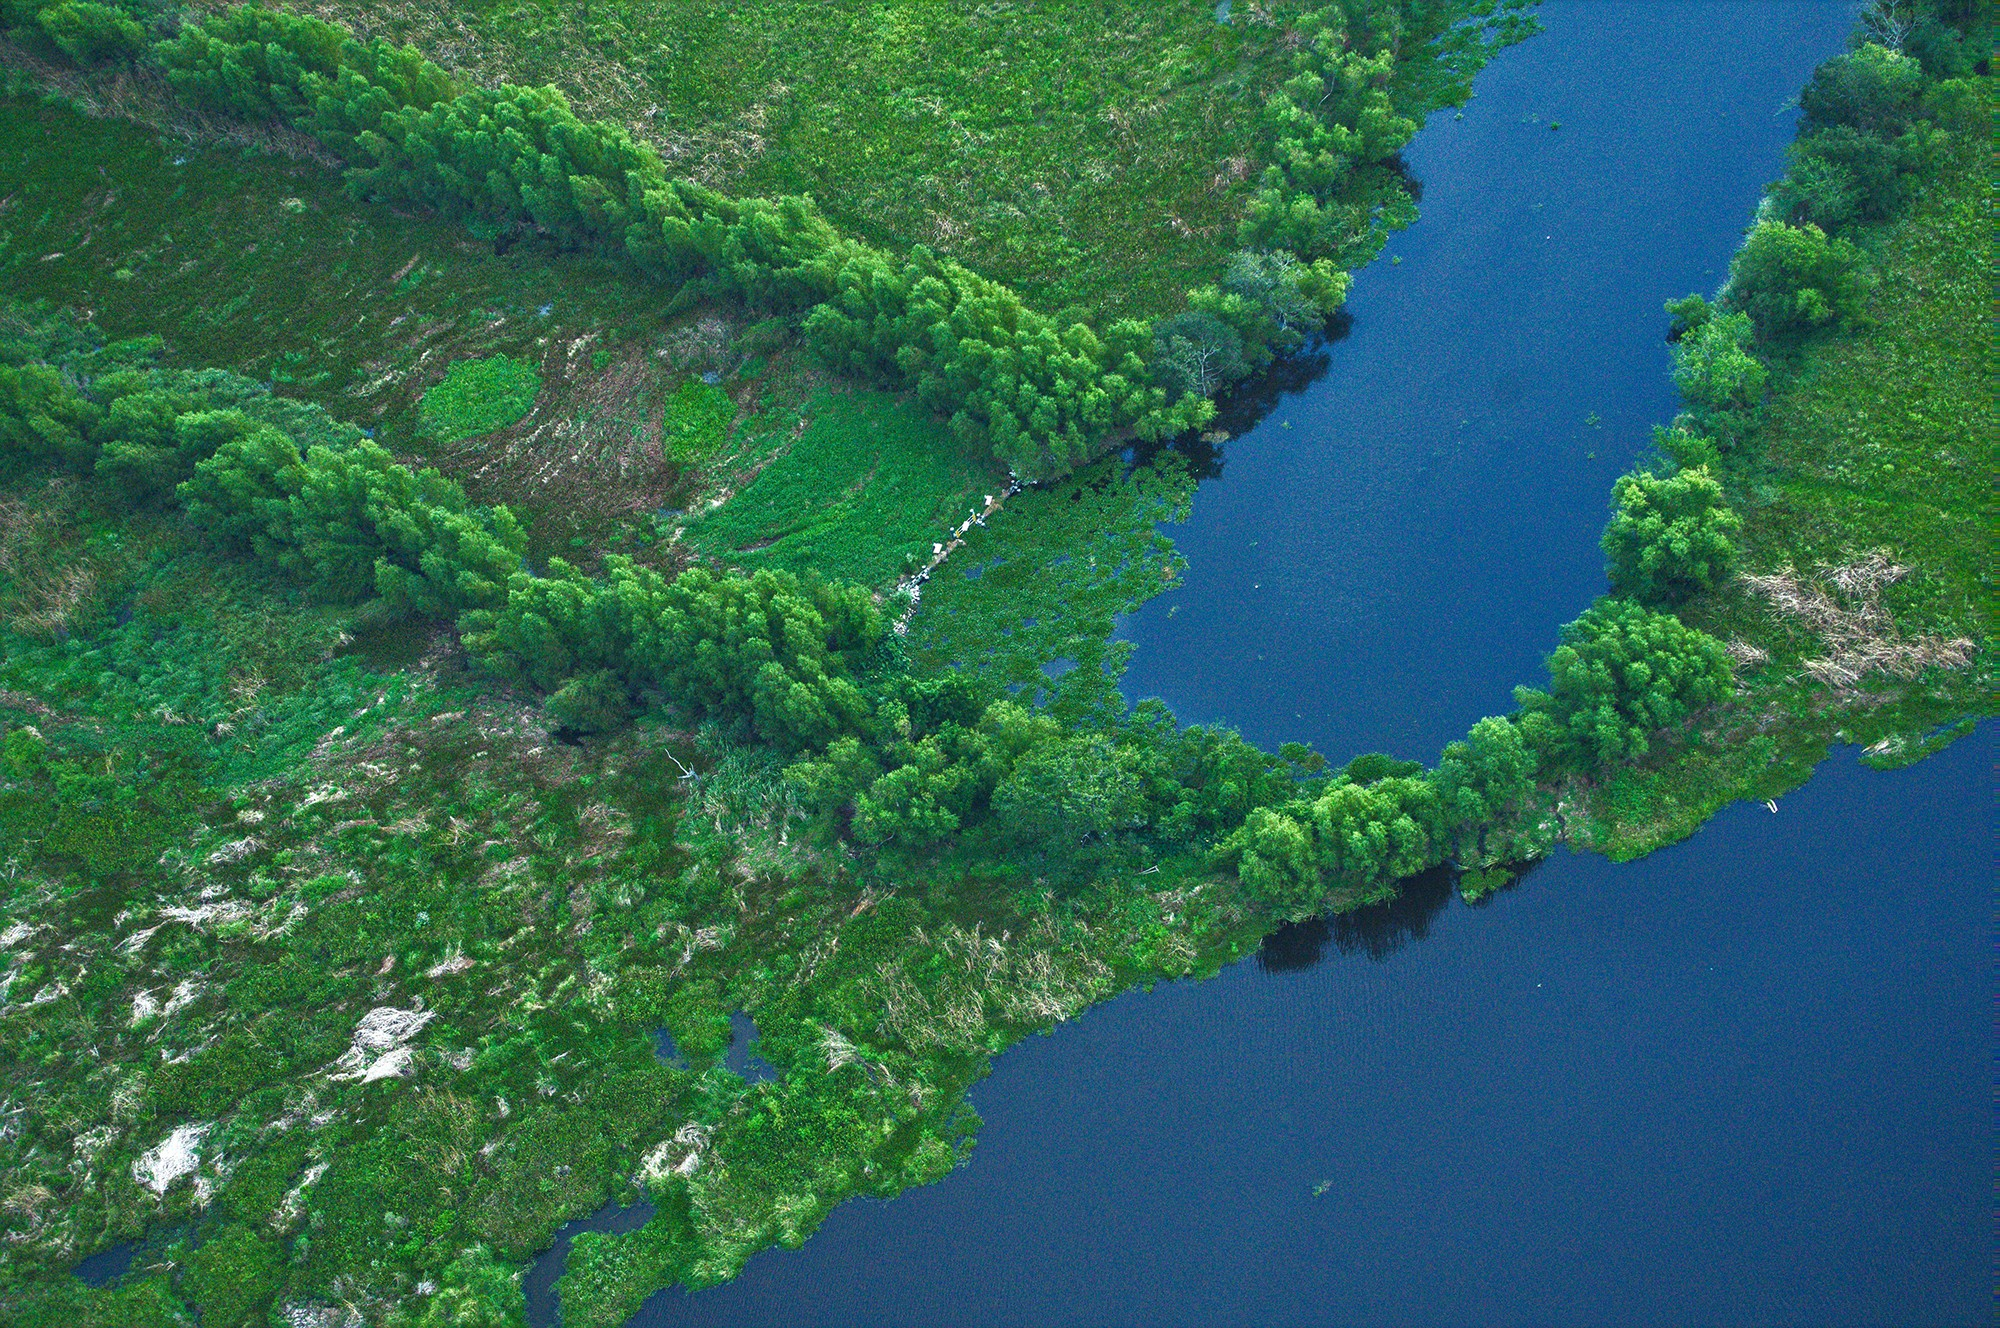 aerial view of green marshland and blue water